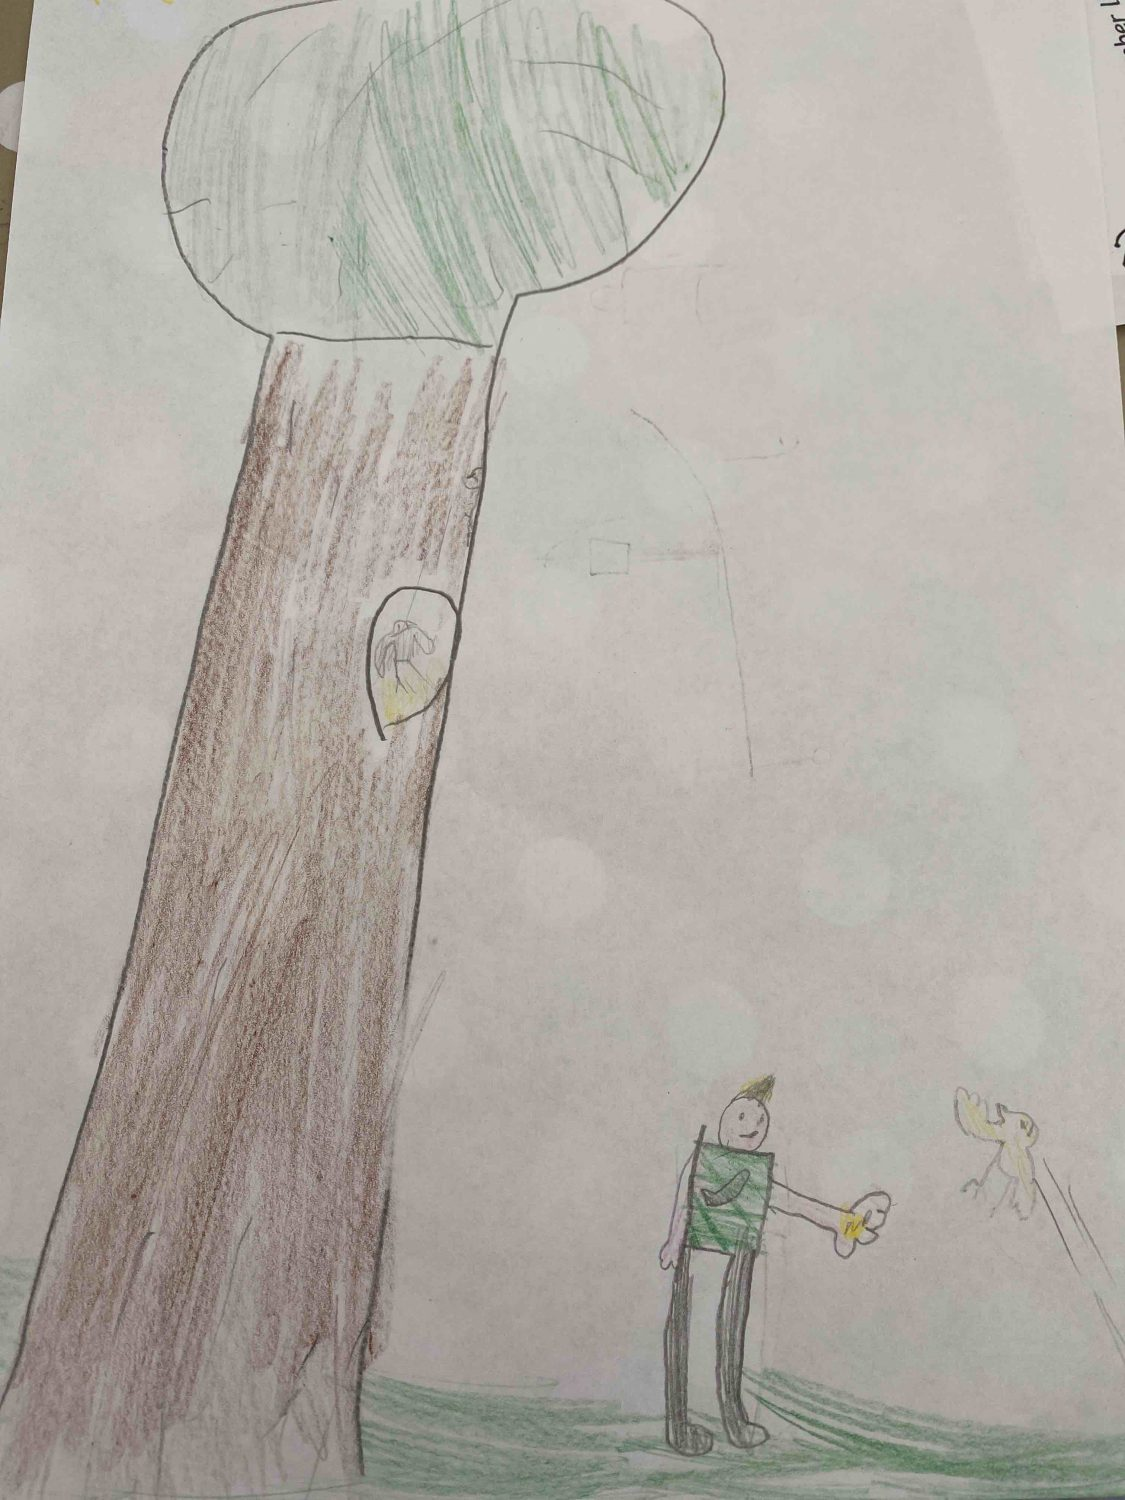 children's drawing of a tree with a boy stood underneath